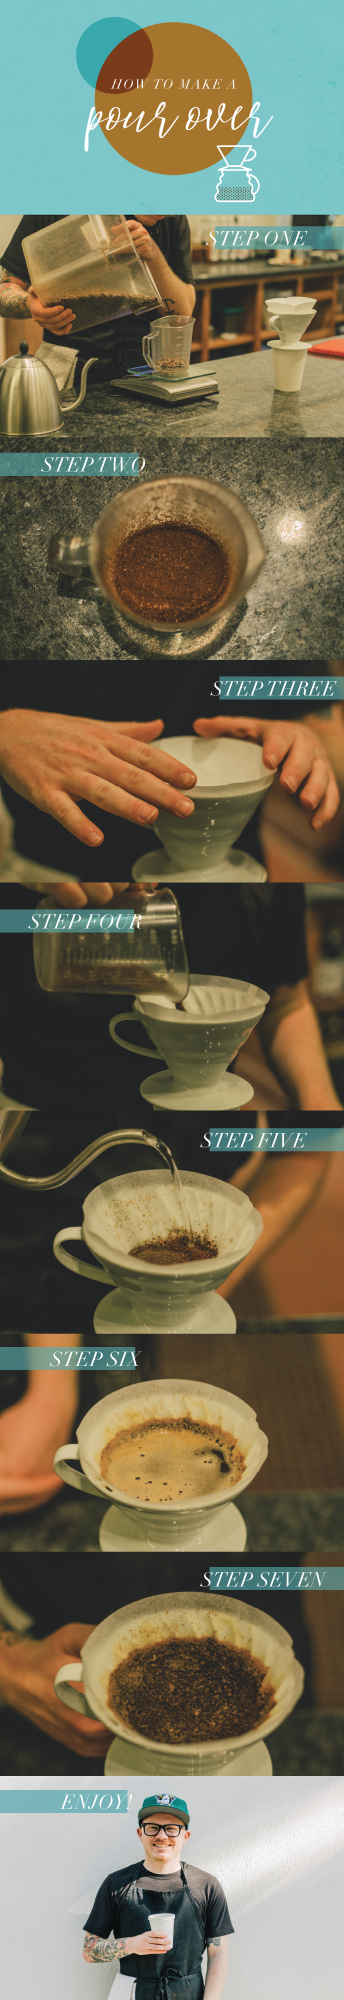 Learn how to make an Overflowing Cup pour over here: http://blog.mhsretreats.com/?p=927